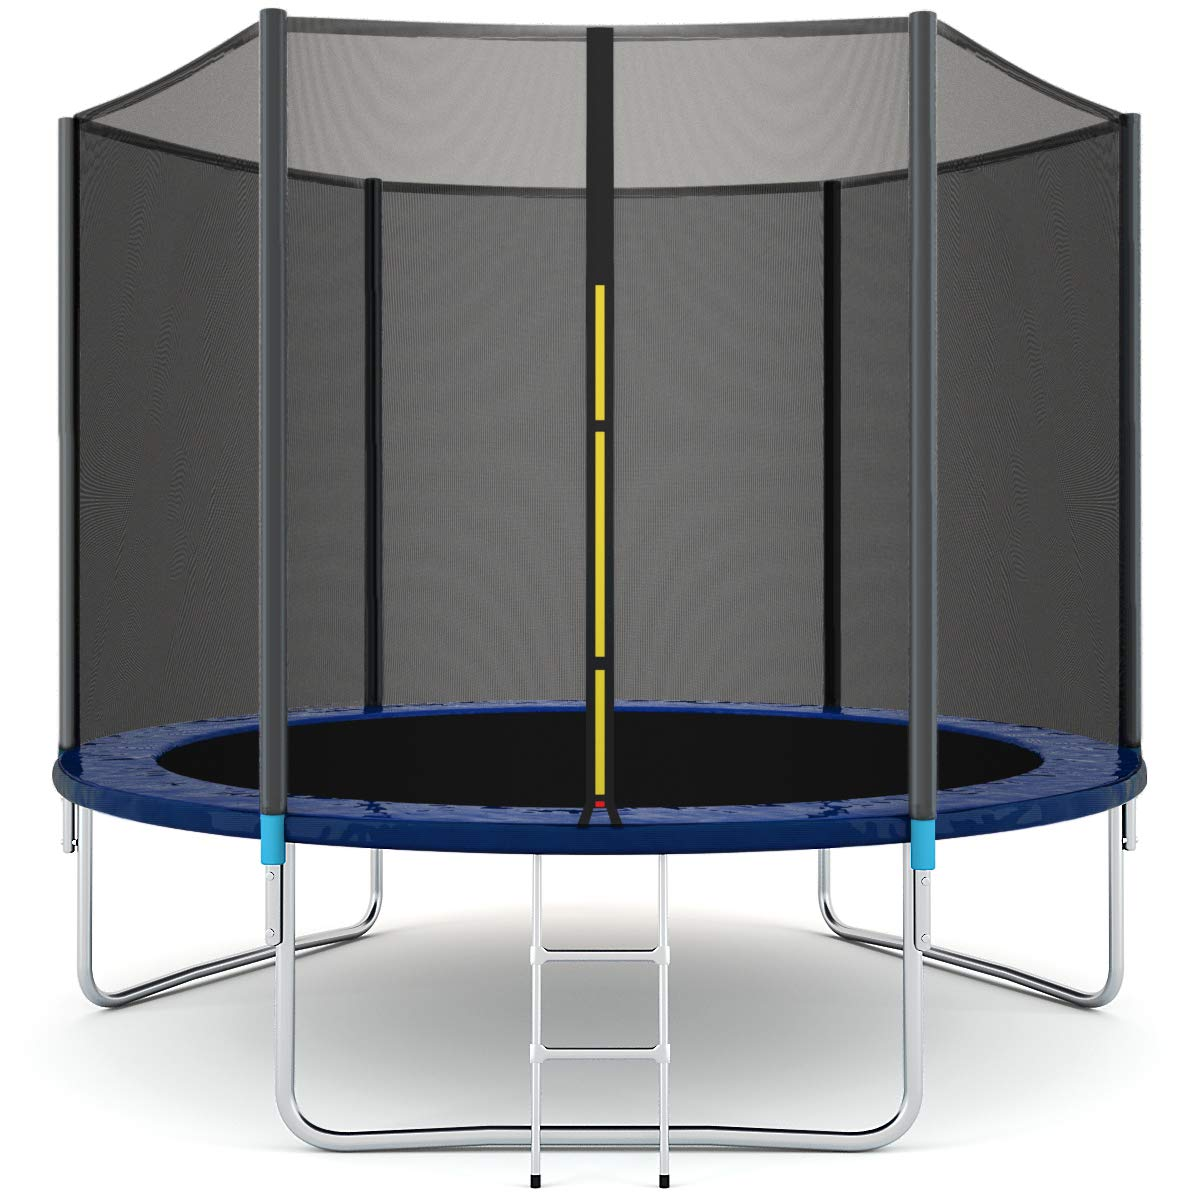 Giantex Trampoline Combo Bounce Jump Safety Enclosure Net W/Spring Pad Ladder (10 FT) by Giantex (Image #1)